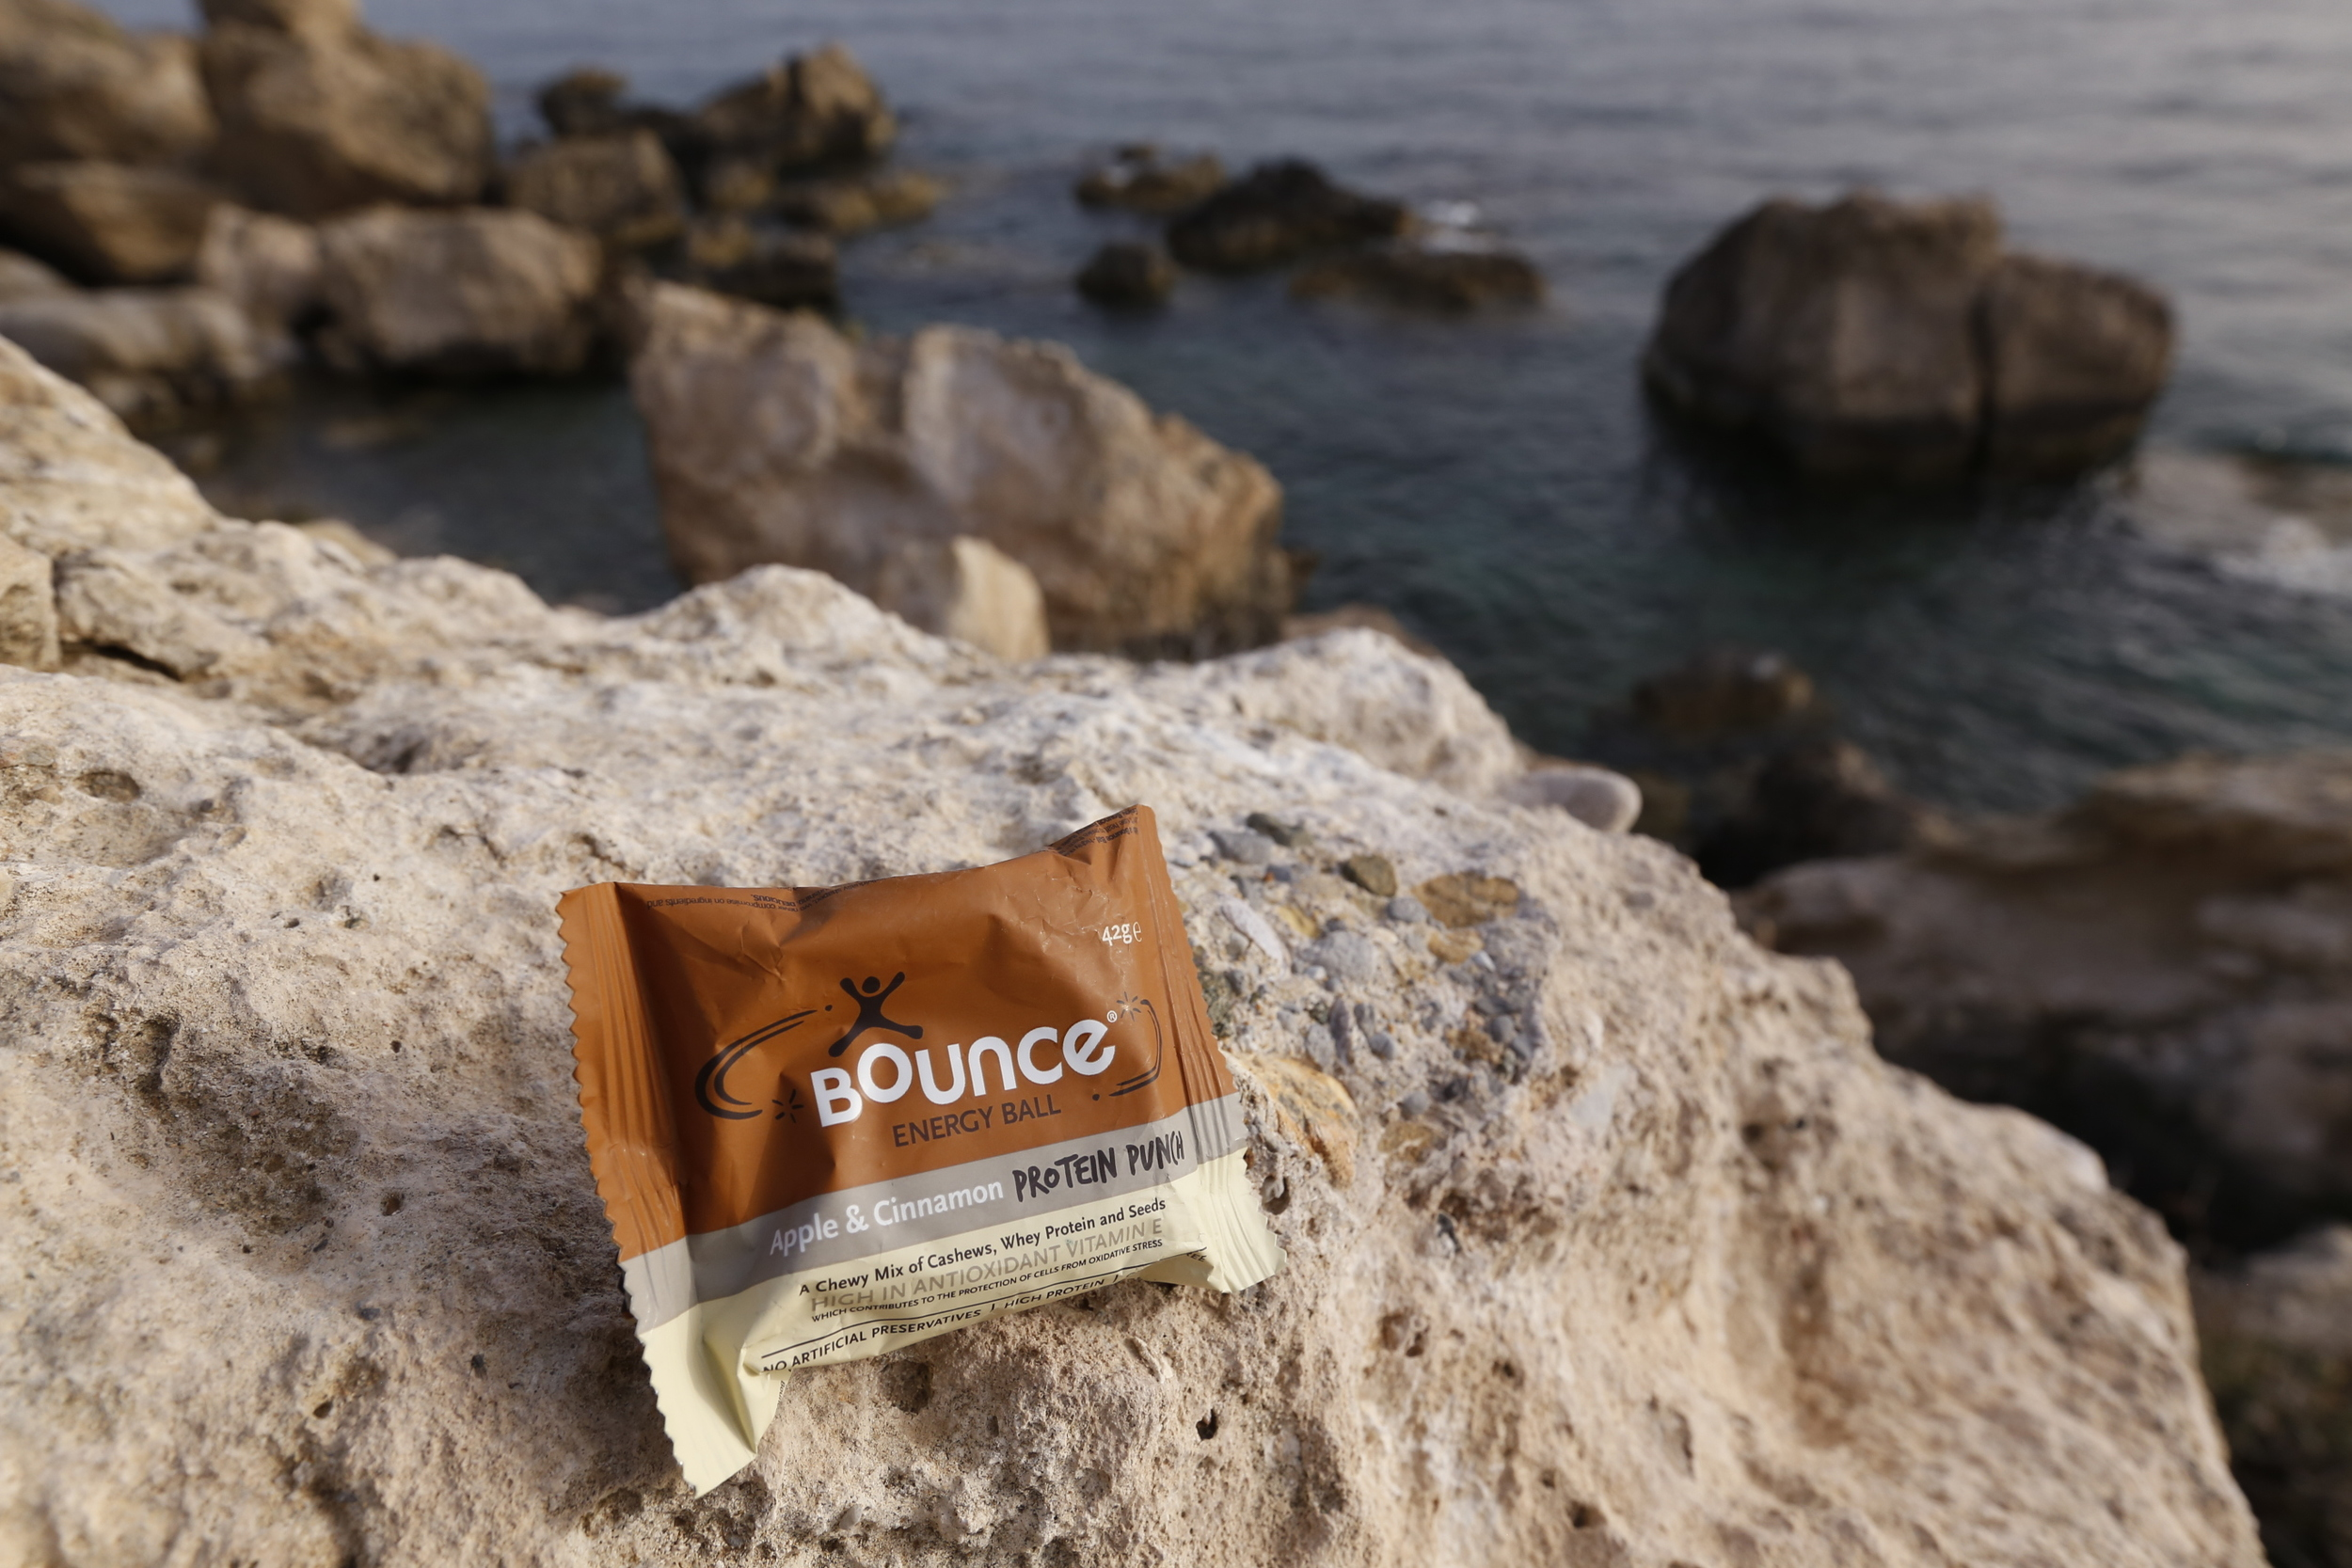 bounce, bounce balls, bounce food, bounce protein, bounce cacoa, rude health, rude health porridge, rude health food, in rude health, sponsored athlete, porridge, camping food, foodie, food blog, food photography, food journalist, eeeats, lunch, breakfast, protein, protein food